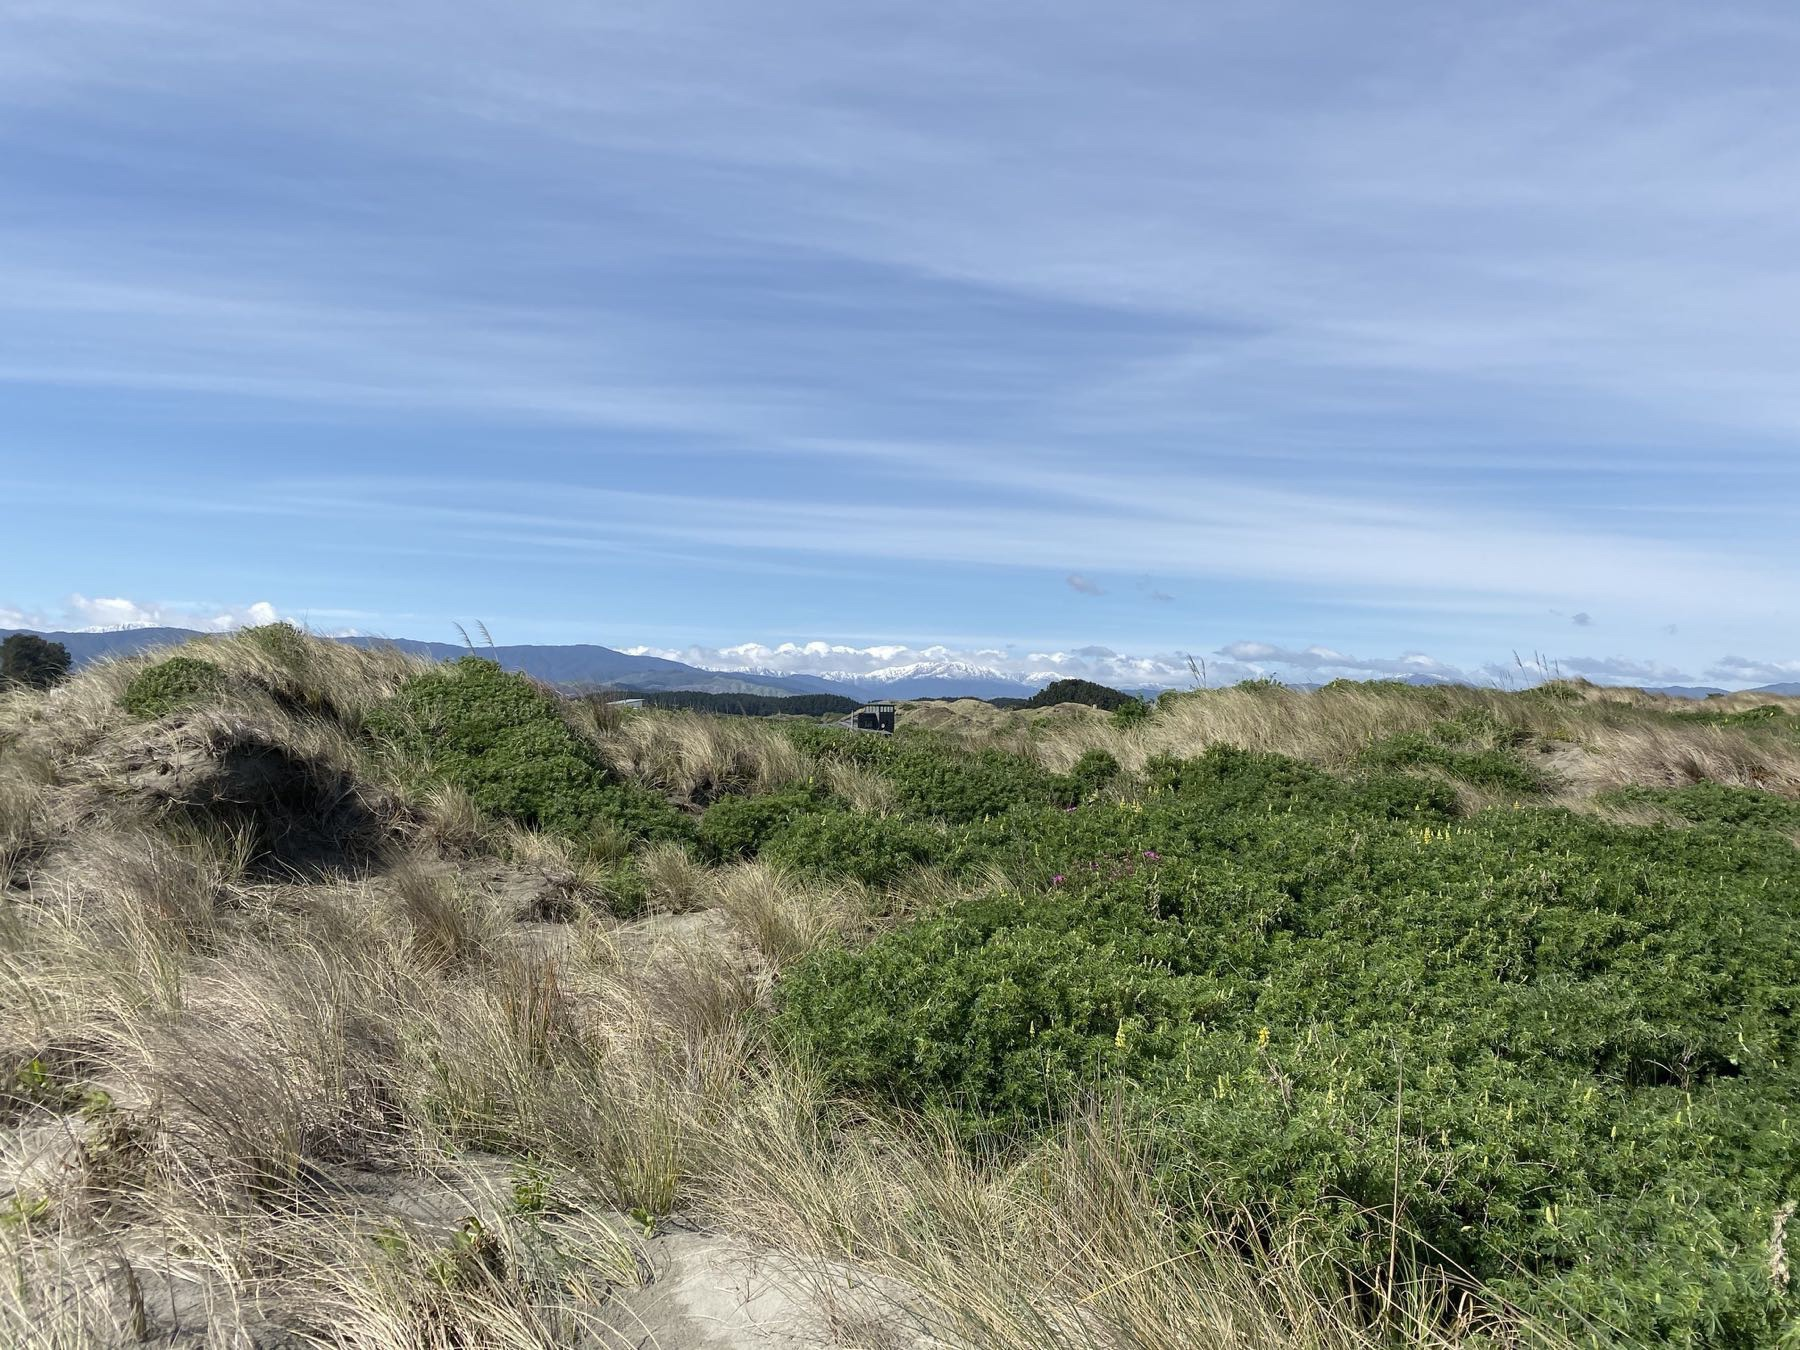 Snow-topped mountain behind sand dunes.